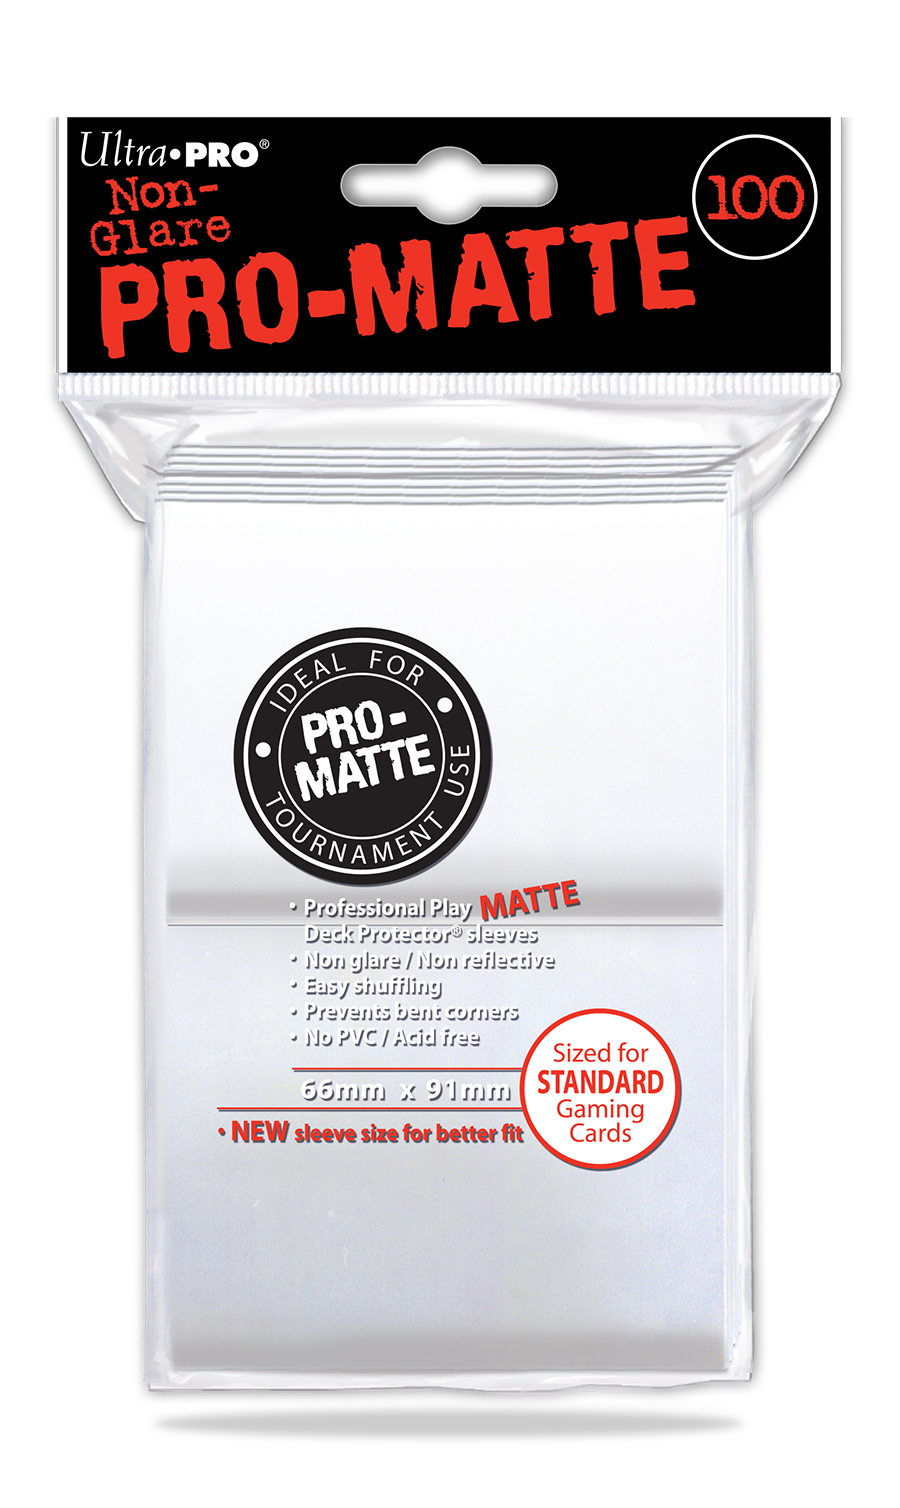 Ultra Pro Pro-Matte Deck Protector Sleeves White 100ct